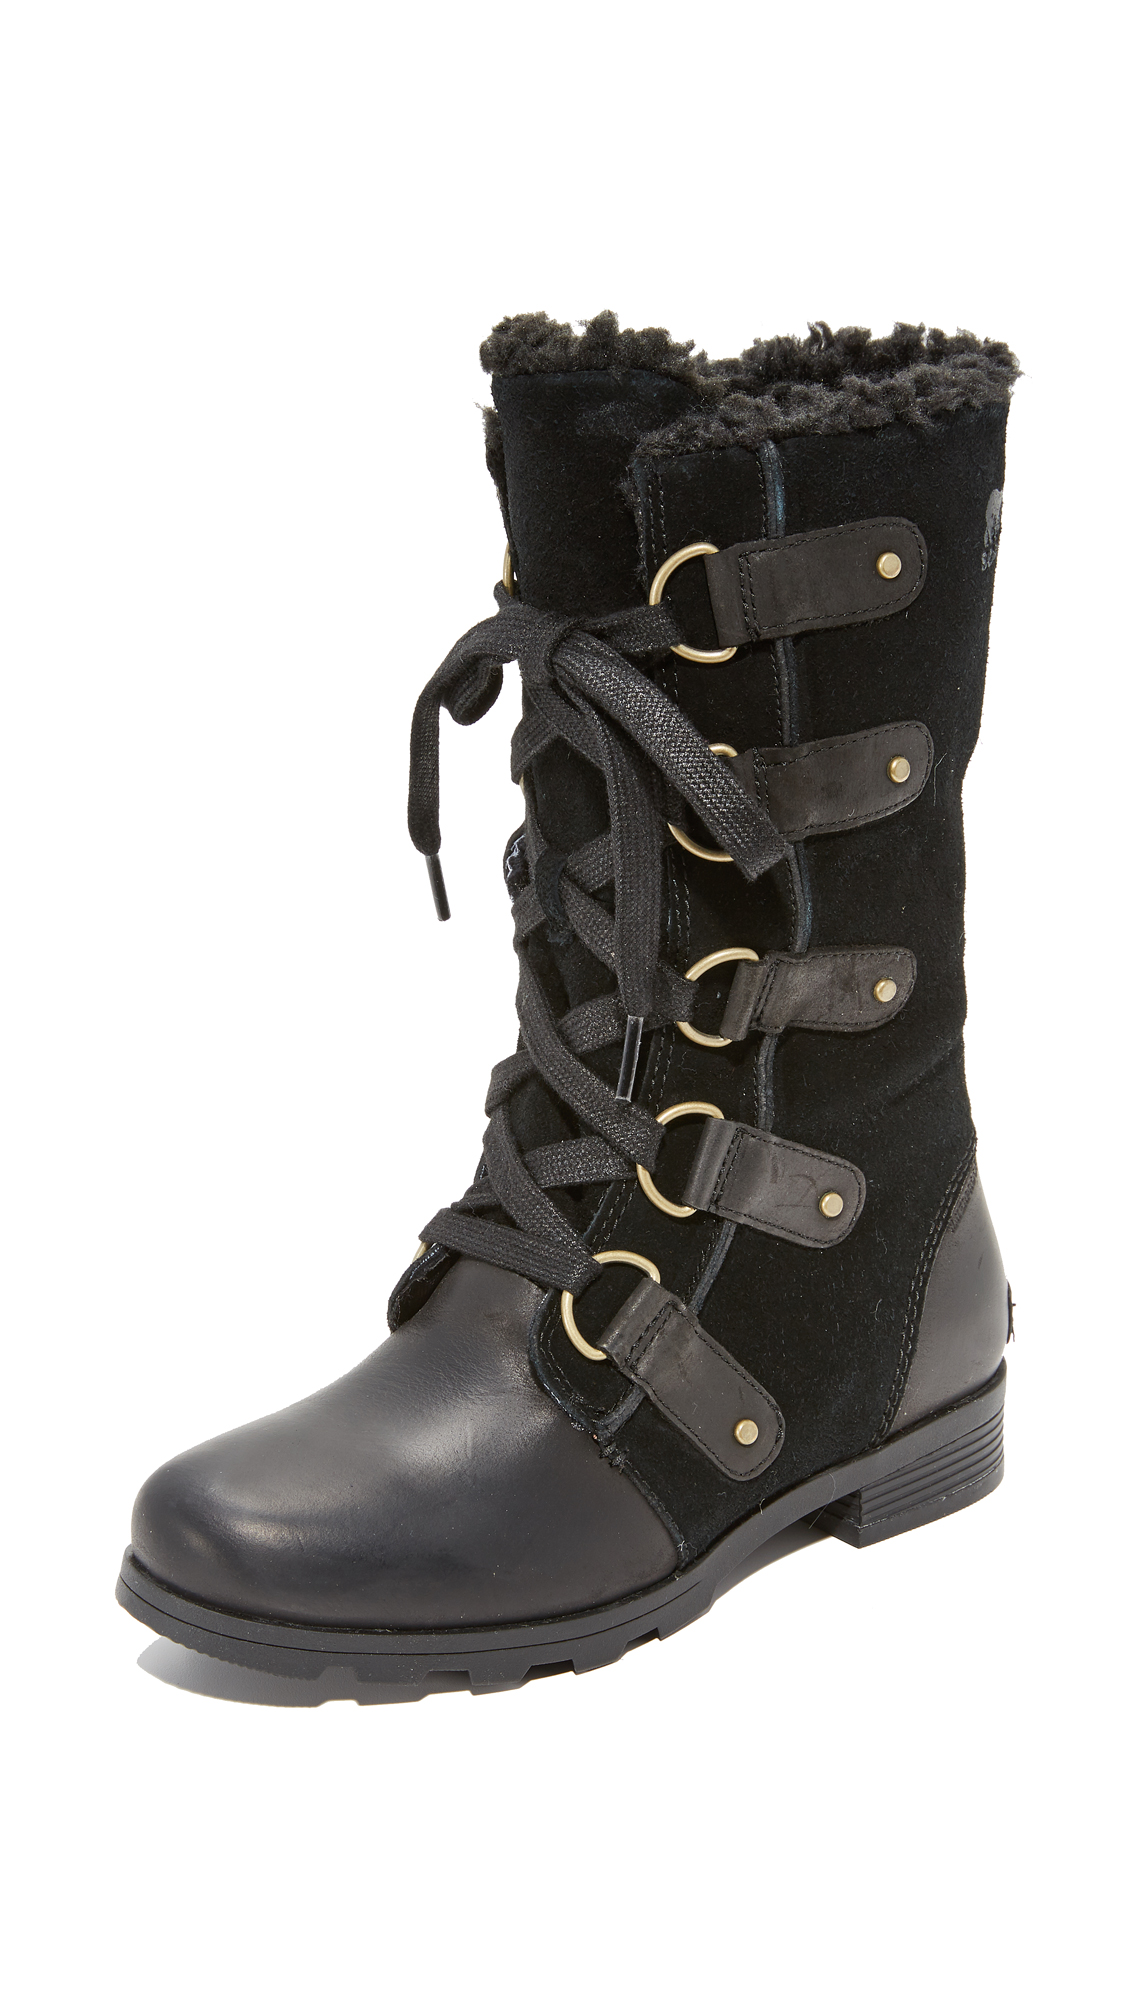 Sorel Emelie Lace Boots - Black